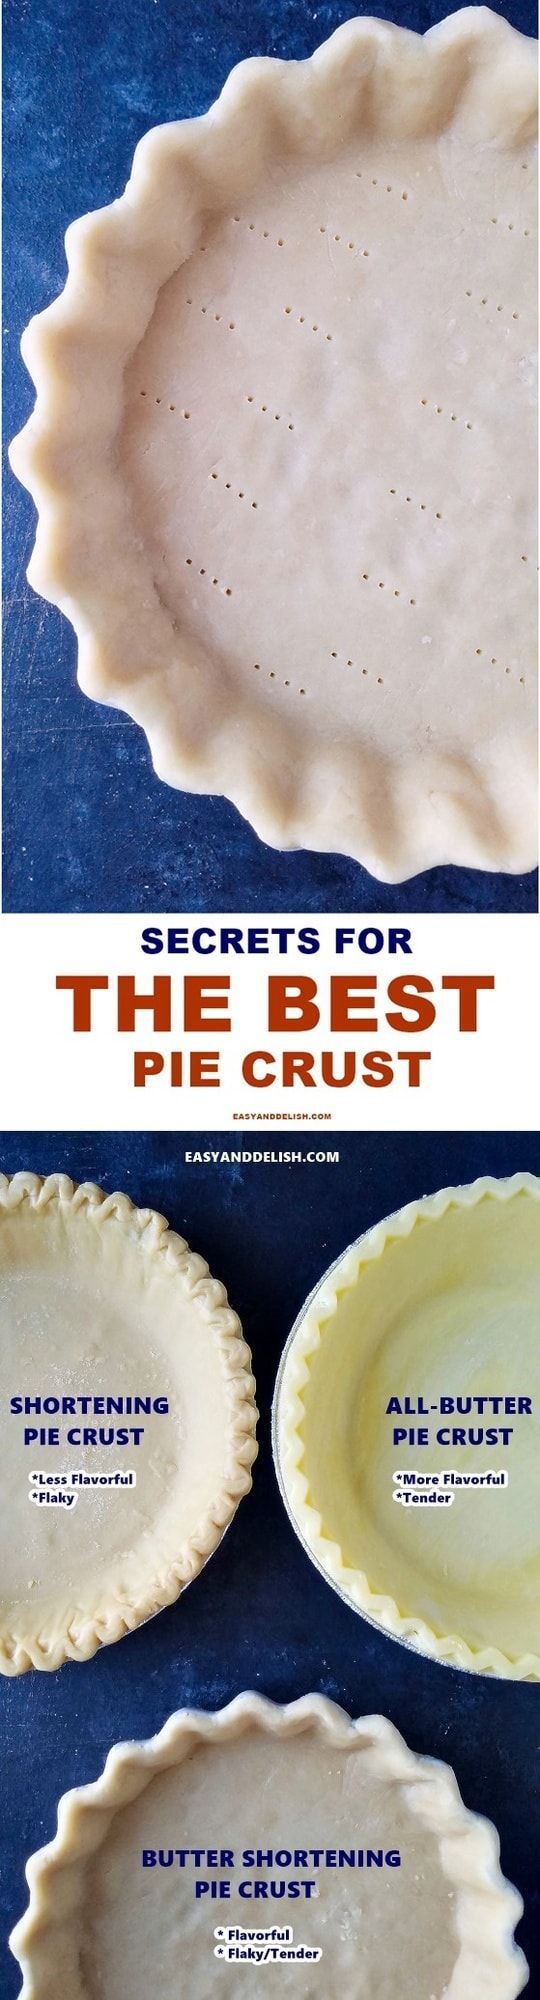 Secrets for the Best Pie Crust Learn how to make the best pie crust recipe: an easy and flaky butter shortening double pie crust made in 10 minutes, with an added secret ingredient. Make this easy recipe for Thanksgiving or other holidays! Best Pie Crust Recipe, Easy Pie Crust, Homemade Pie Crusts, Pie Crust Recipes, Cake Recipes, Dessert Recipes, Delicious Desserts, Perfect Pie Crust, Cocinas Kitchen